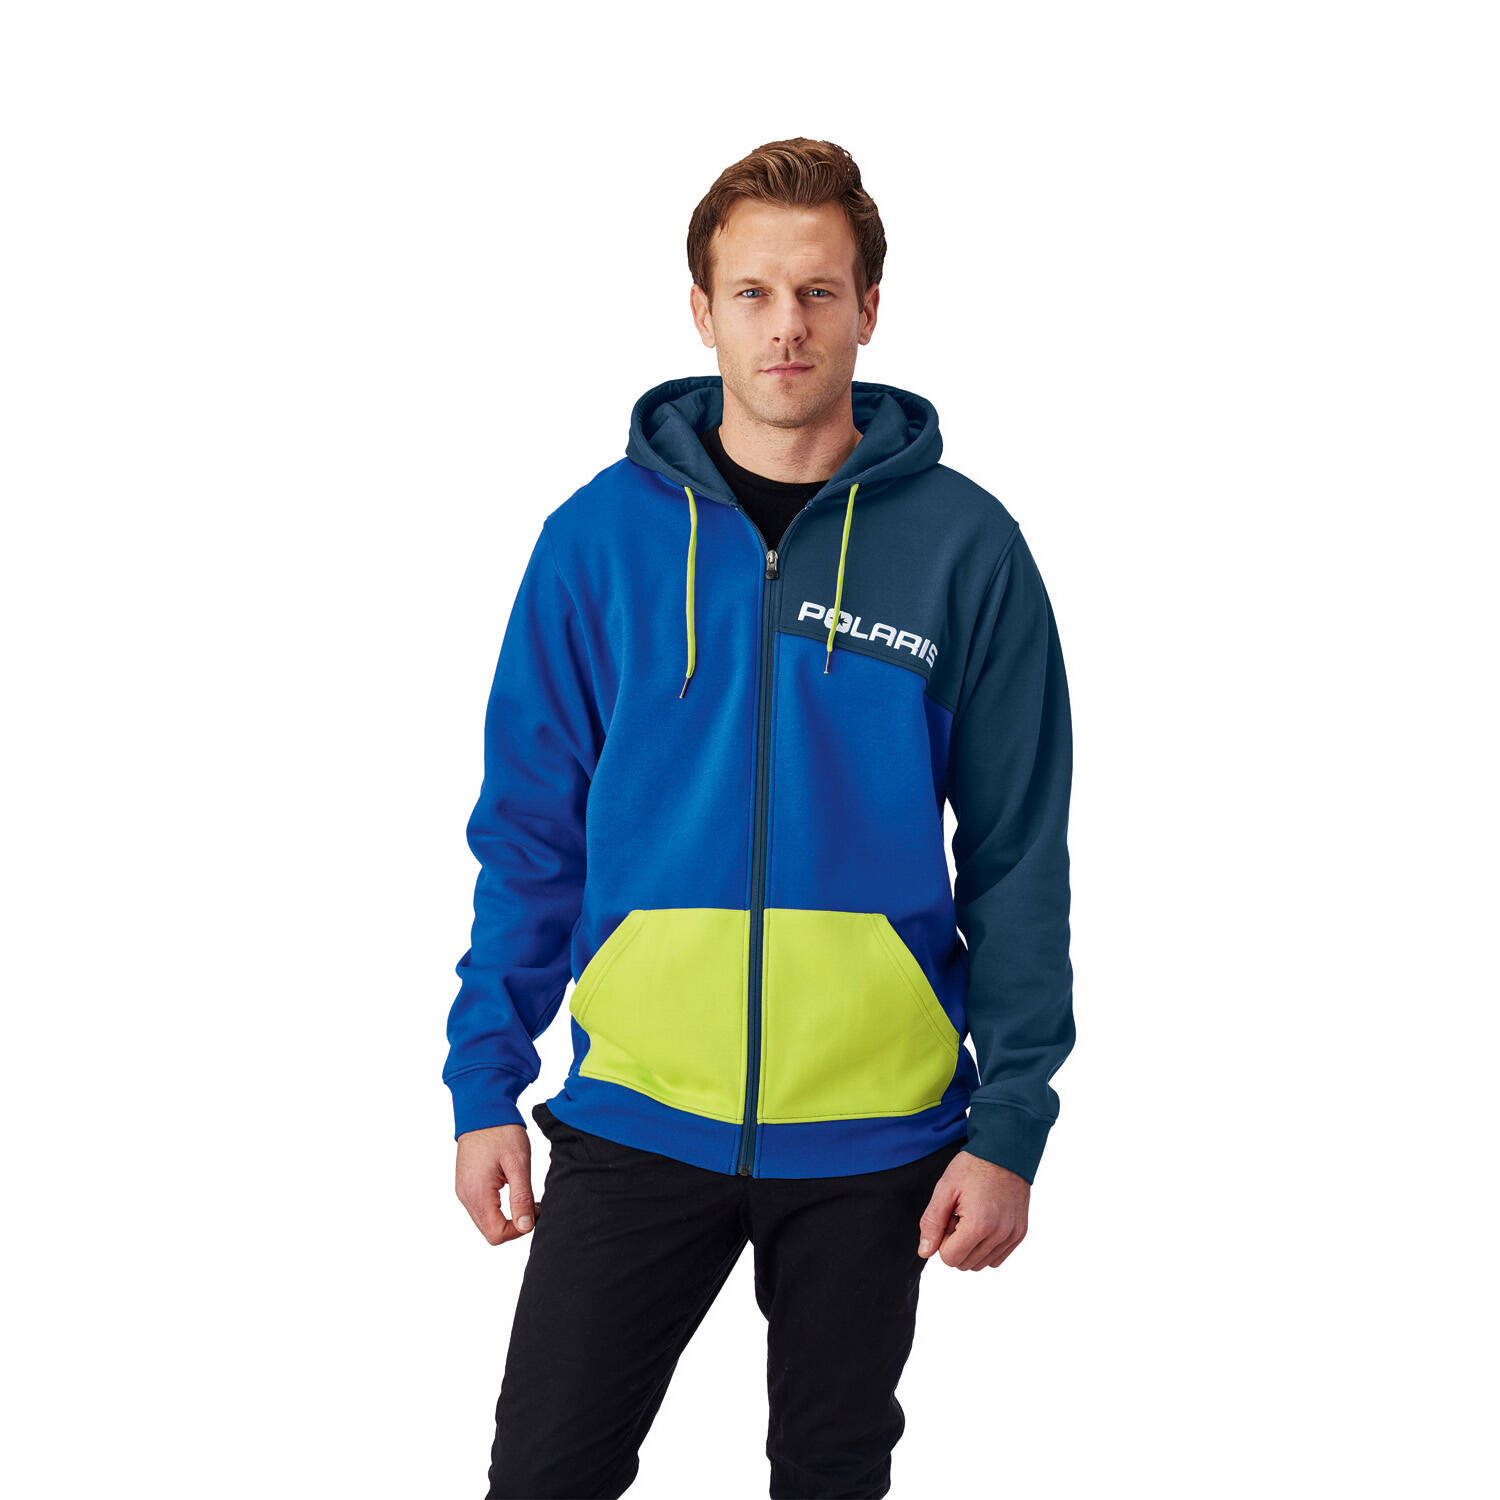 Men's Full-Zip Color Block Hoodie with Logo, Blue/Lime